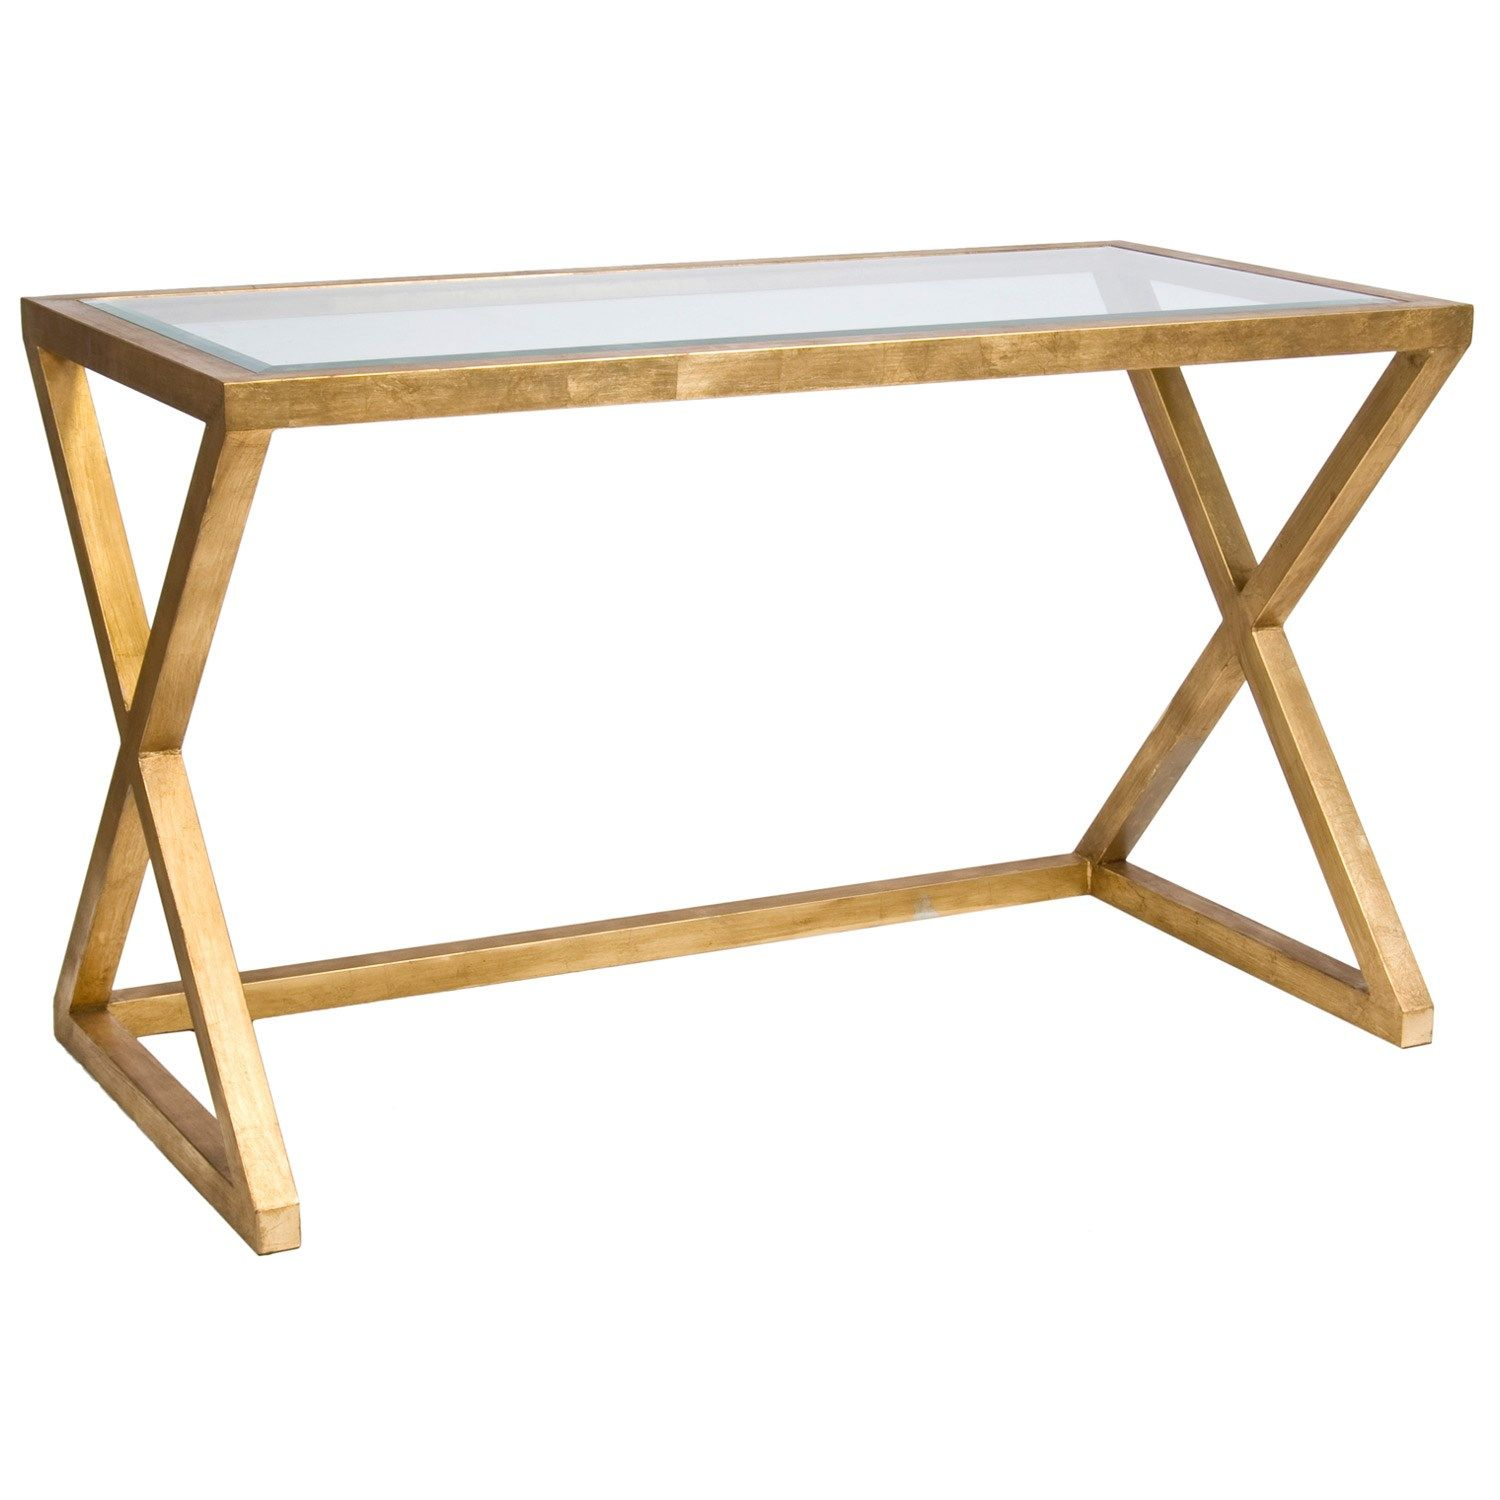 Worlds away mark gold leafed deskconsole 24d probably too worlds away mark gold leafed deskconsole 24d probably too deep geotapseo Choice Image